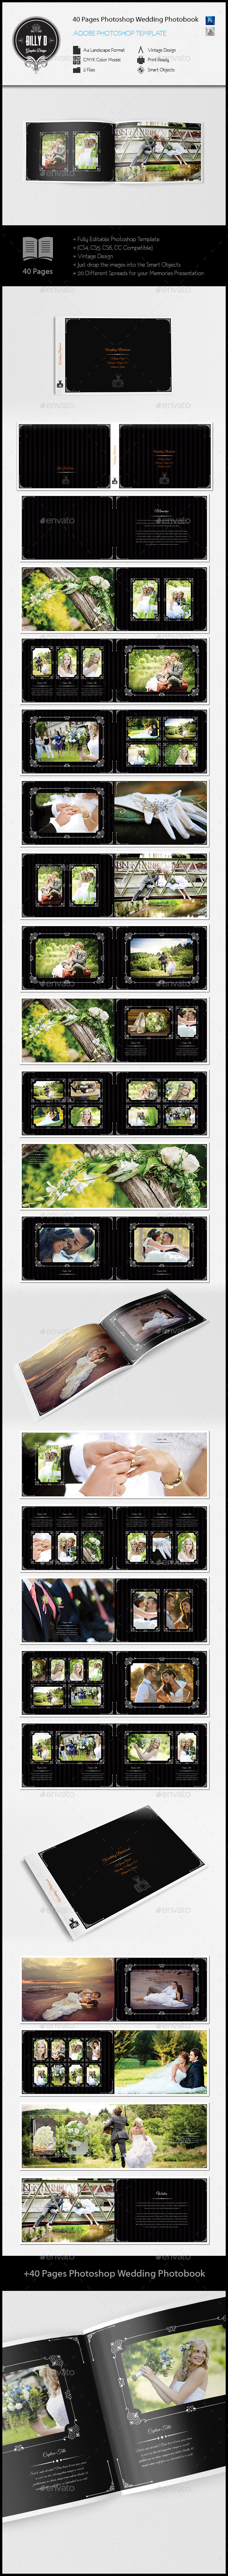 40 Pages Photoshop Wedding Photobook Template - #Photo #Albums Print ...